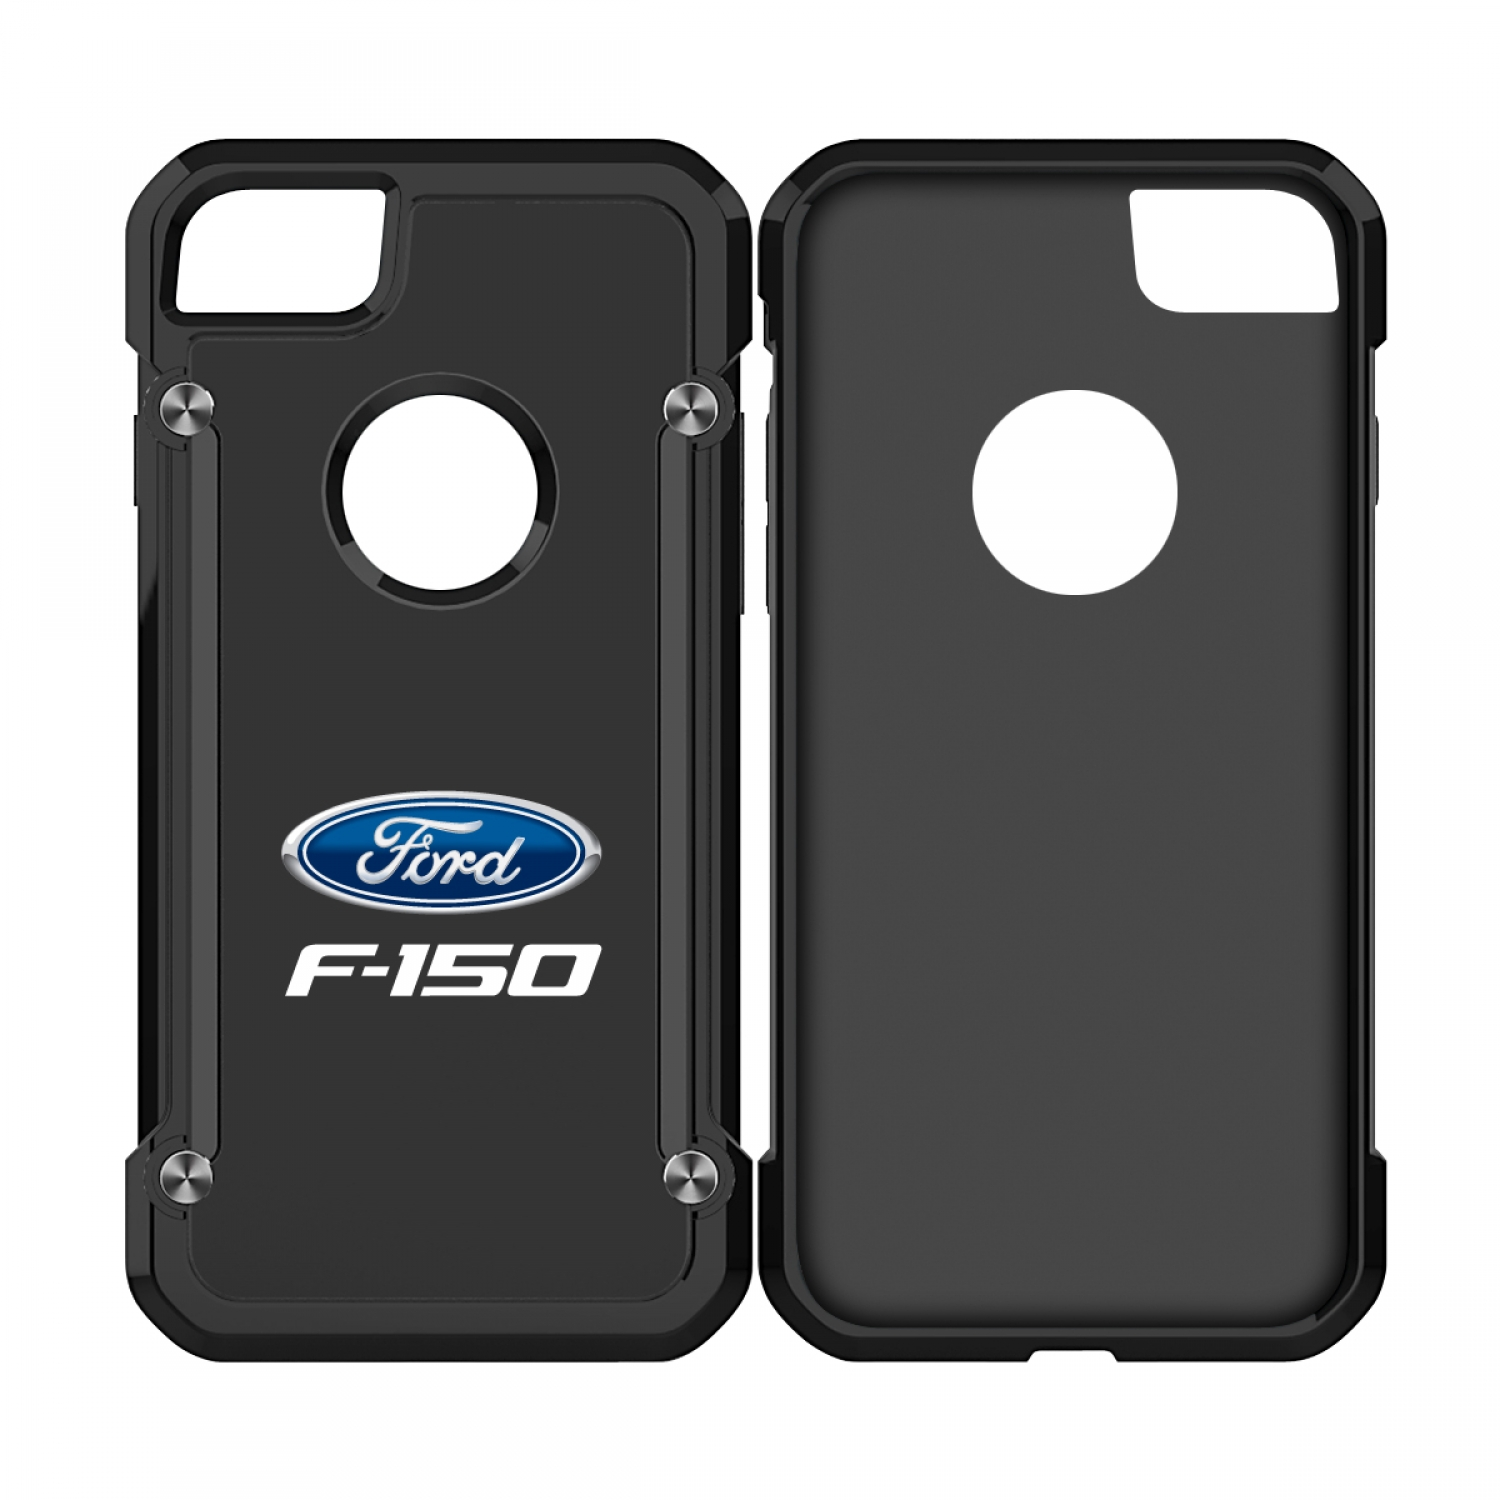 Ford F-150 iPhone 7 iPhone 8 TPU Shockproof Black Cell Phone Case